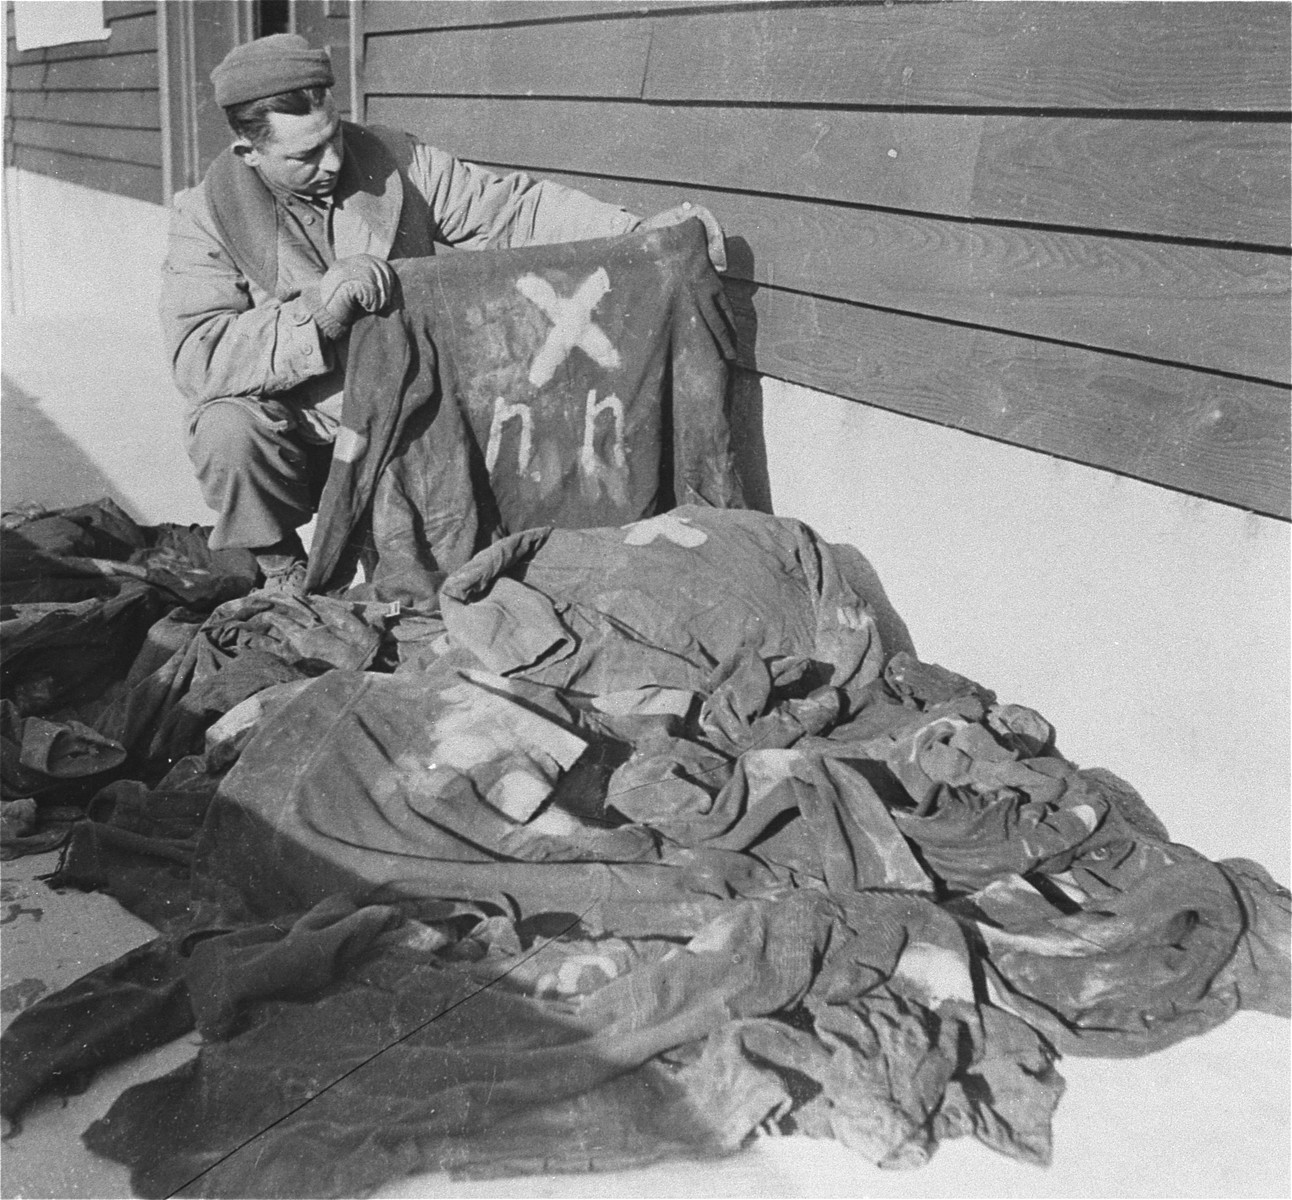 """An American soldier examines markings on prisoners' clothing in Natzweiler-Struthof.    The """"N N"""" on the back of the shirt he is holding stands for """"Nacht und Nebel"""" (Night and Fog).  NN prisoners were interned for acts of resistance and were executed under orders of a Hitler Decree."""